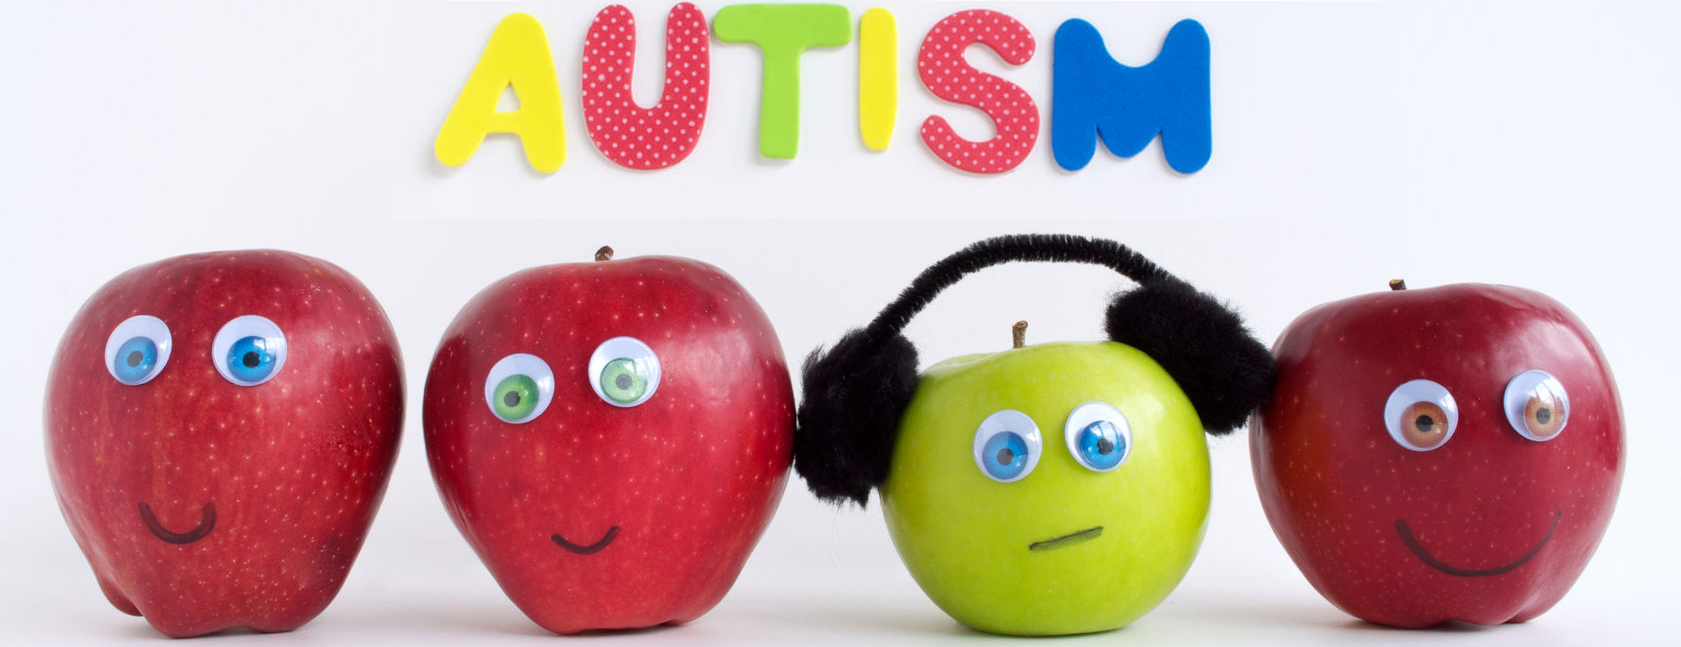 Permalink to:Supporting People with Autism